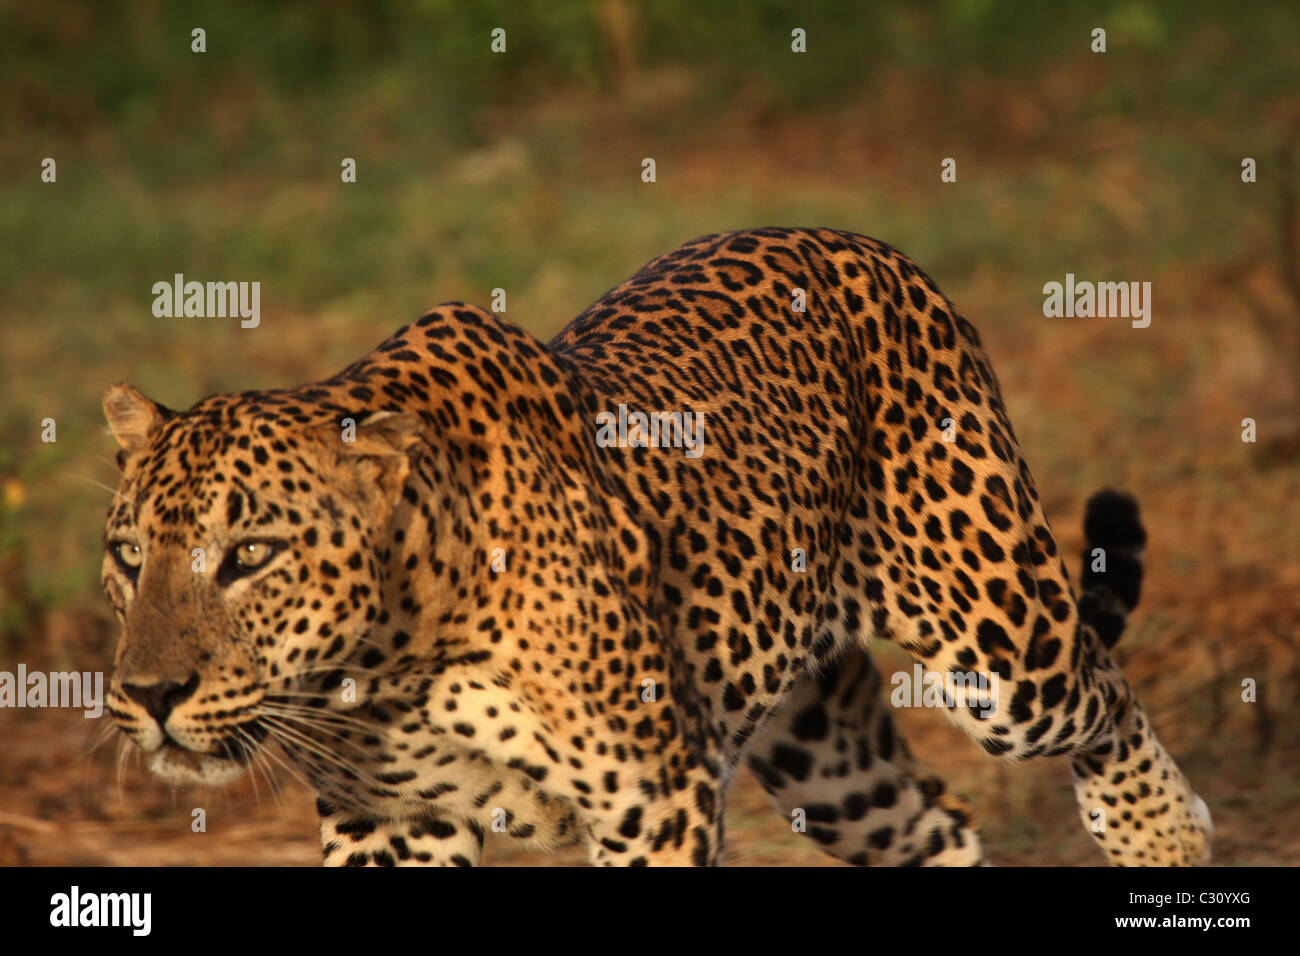 Leopard on the hunt for spotted deer, Yala (Ruhuna) National Park, Sri Lanka - Stock Image